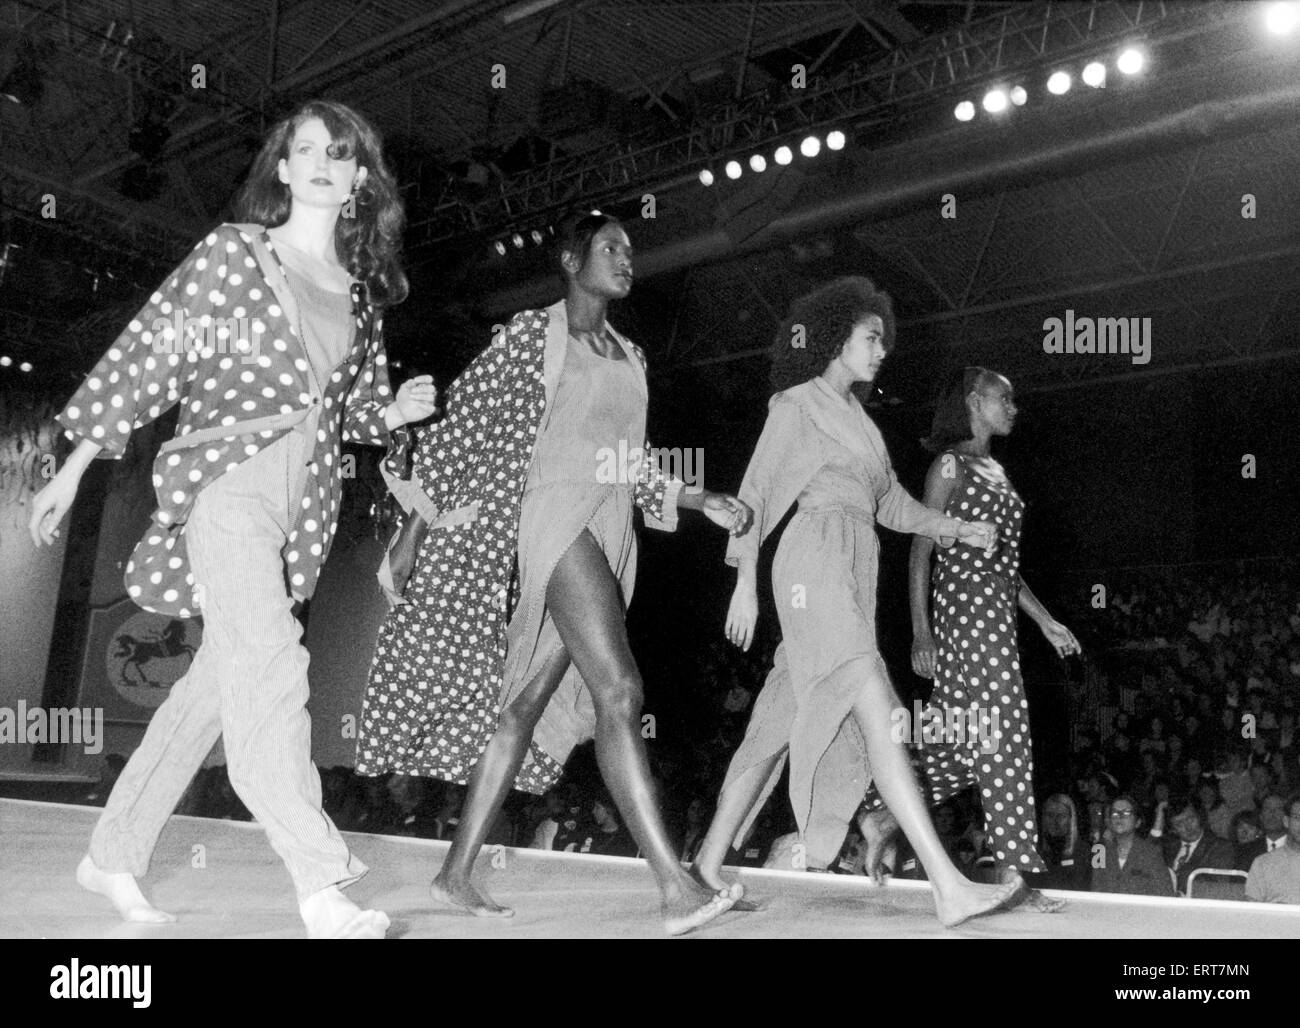 Clothes Show Live, models in spots and dresses slit to the waist stride out on the catwalk, Birmingham, 6th December - Stock Image